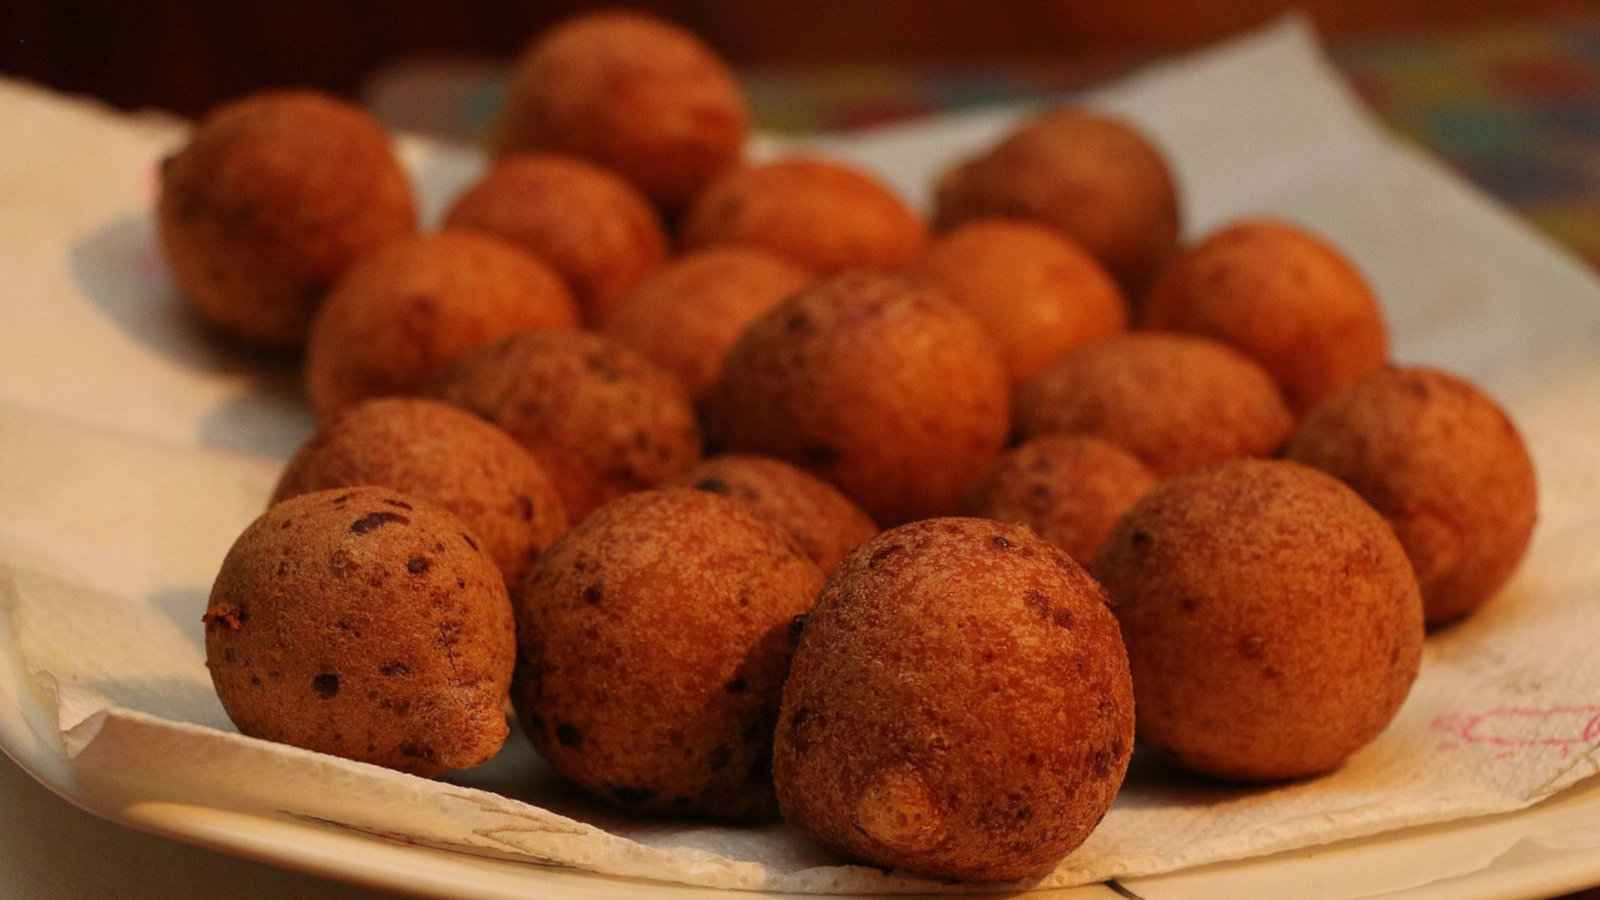 Bunuelos are a delicious cheesy and sugary ball from Colombia we loved